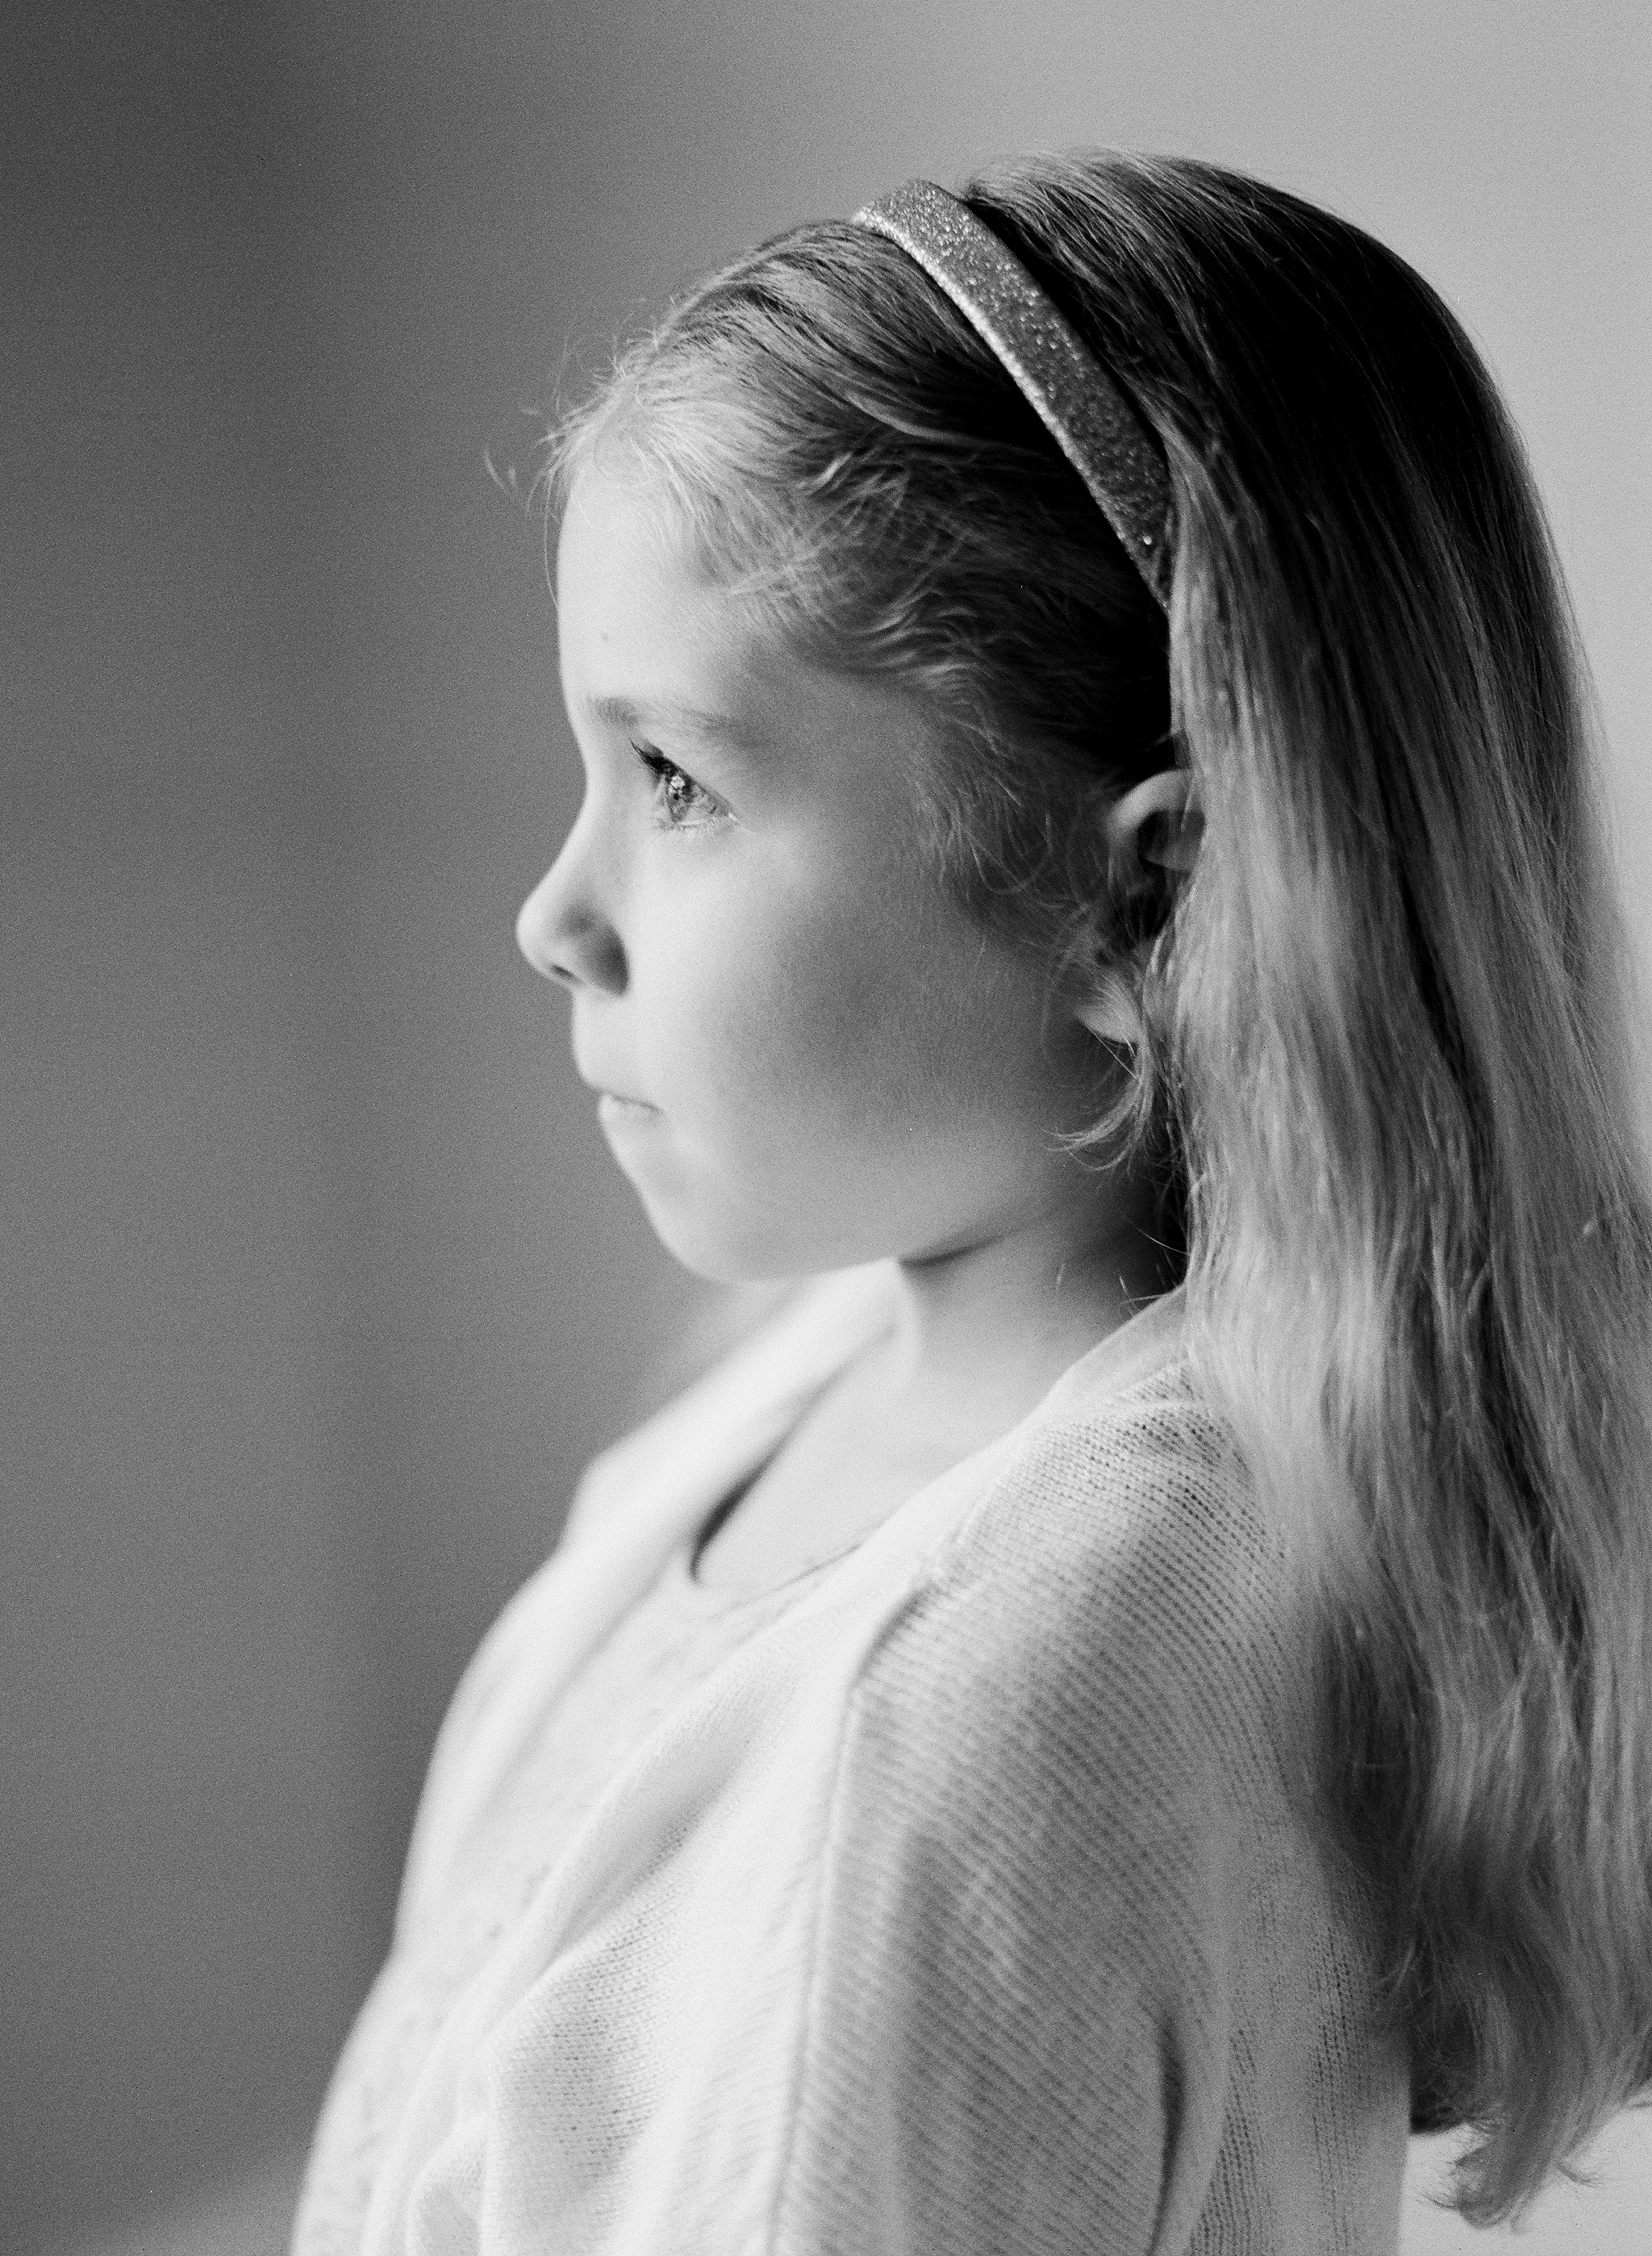 nashville-franklin-blackandwhite-childrens-portraiture-19.JPG